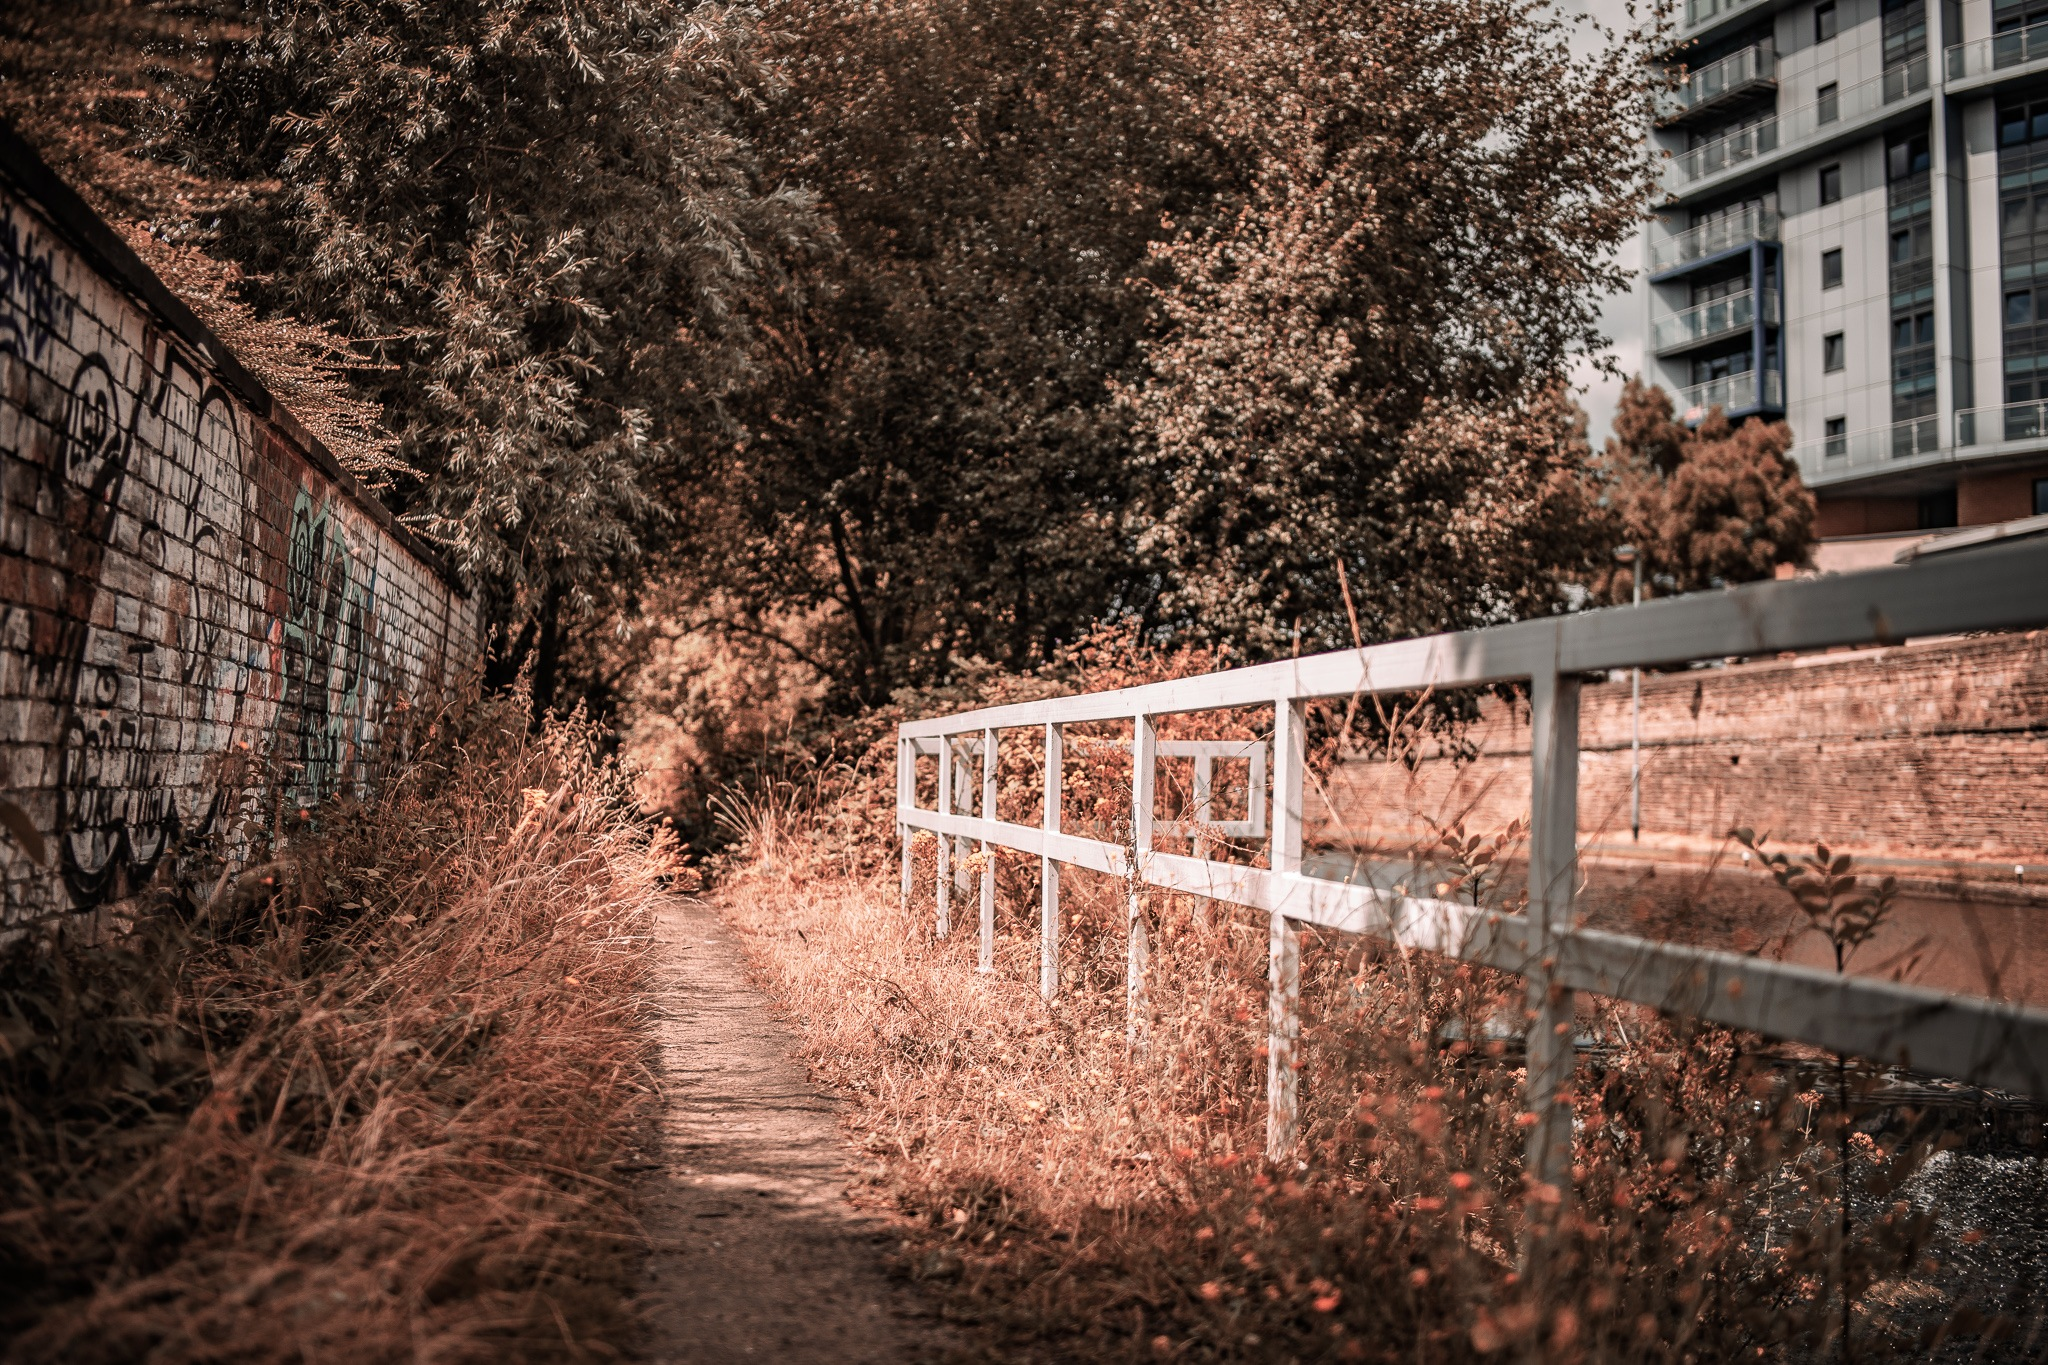 Urban Overgrowth by Kevin